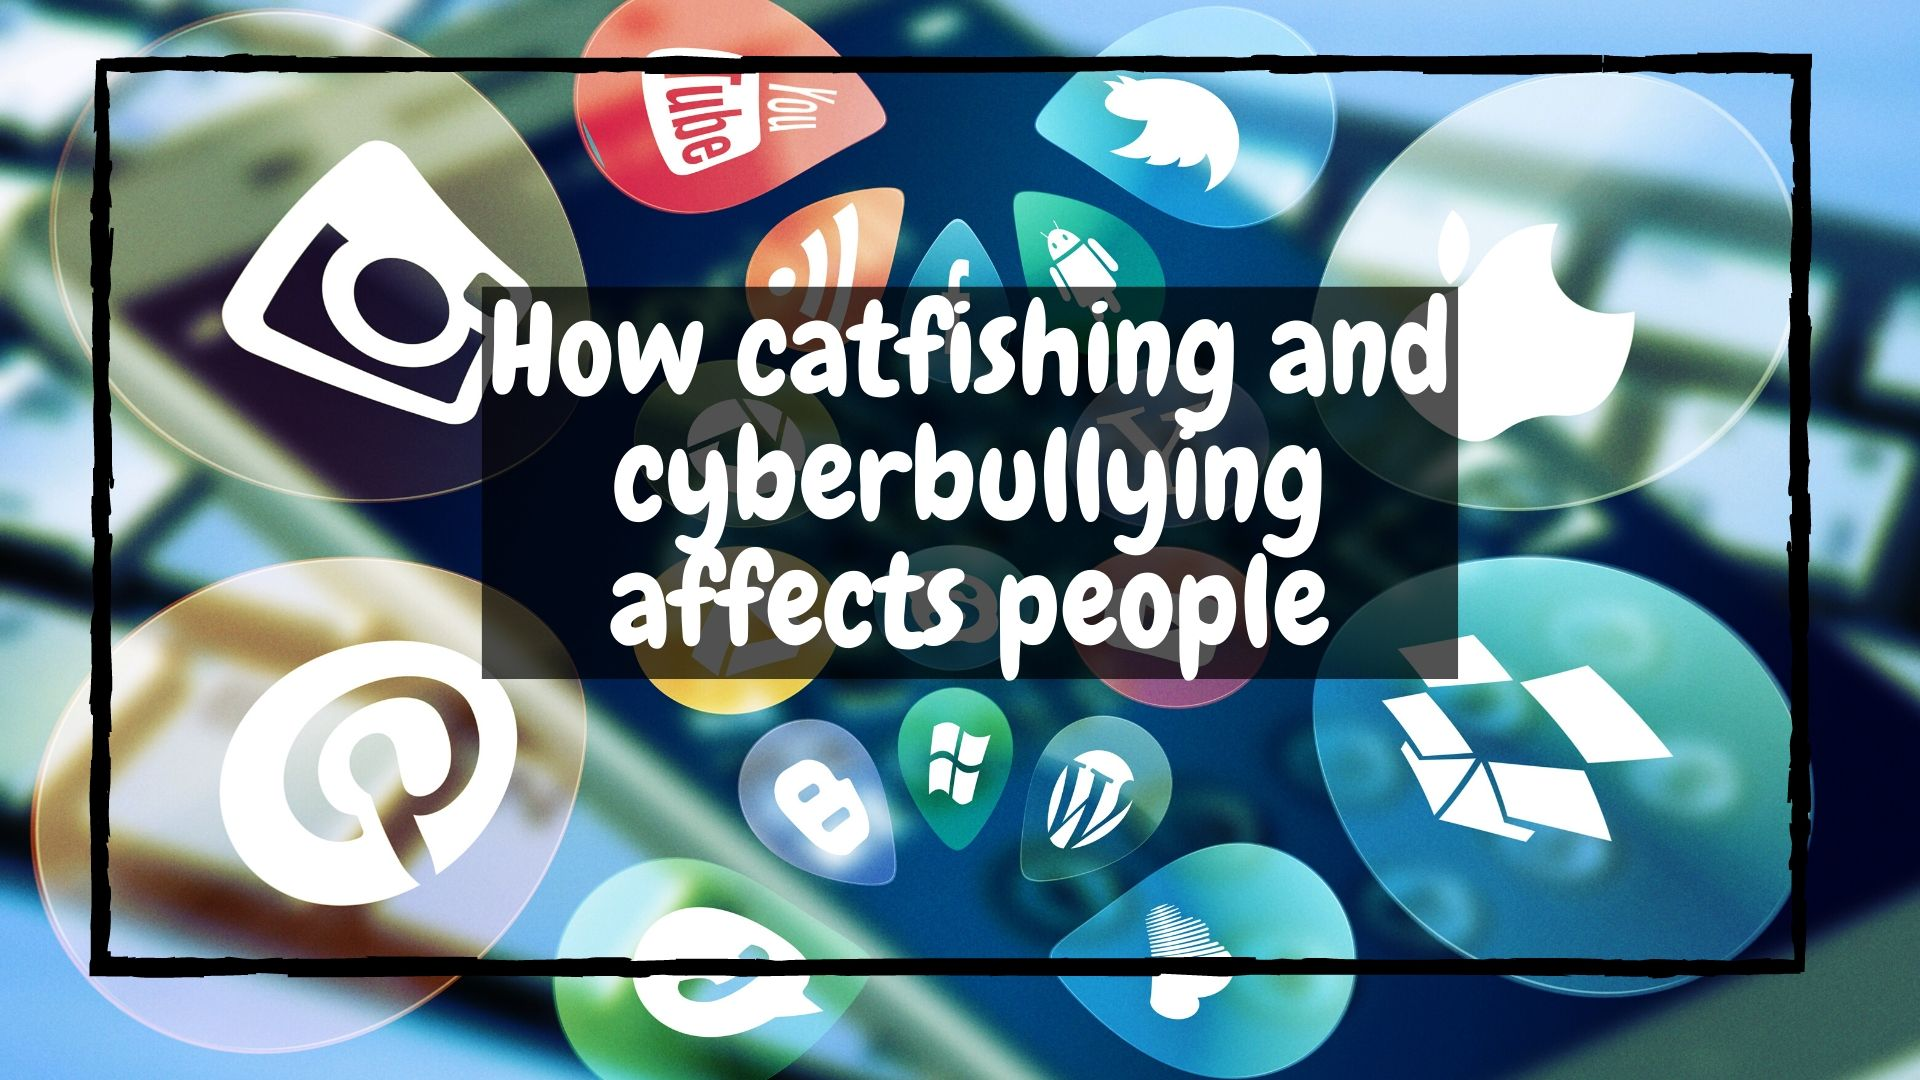 How catfishing and cyberbullying affects people